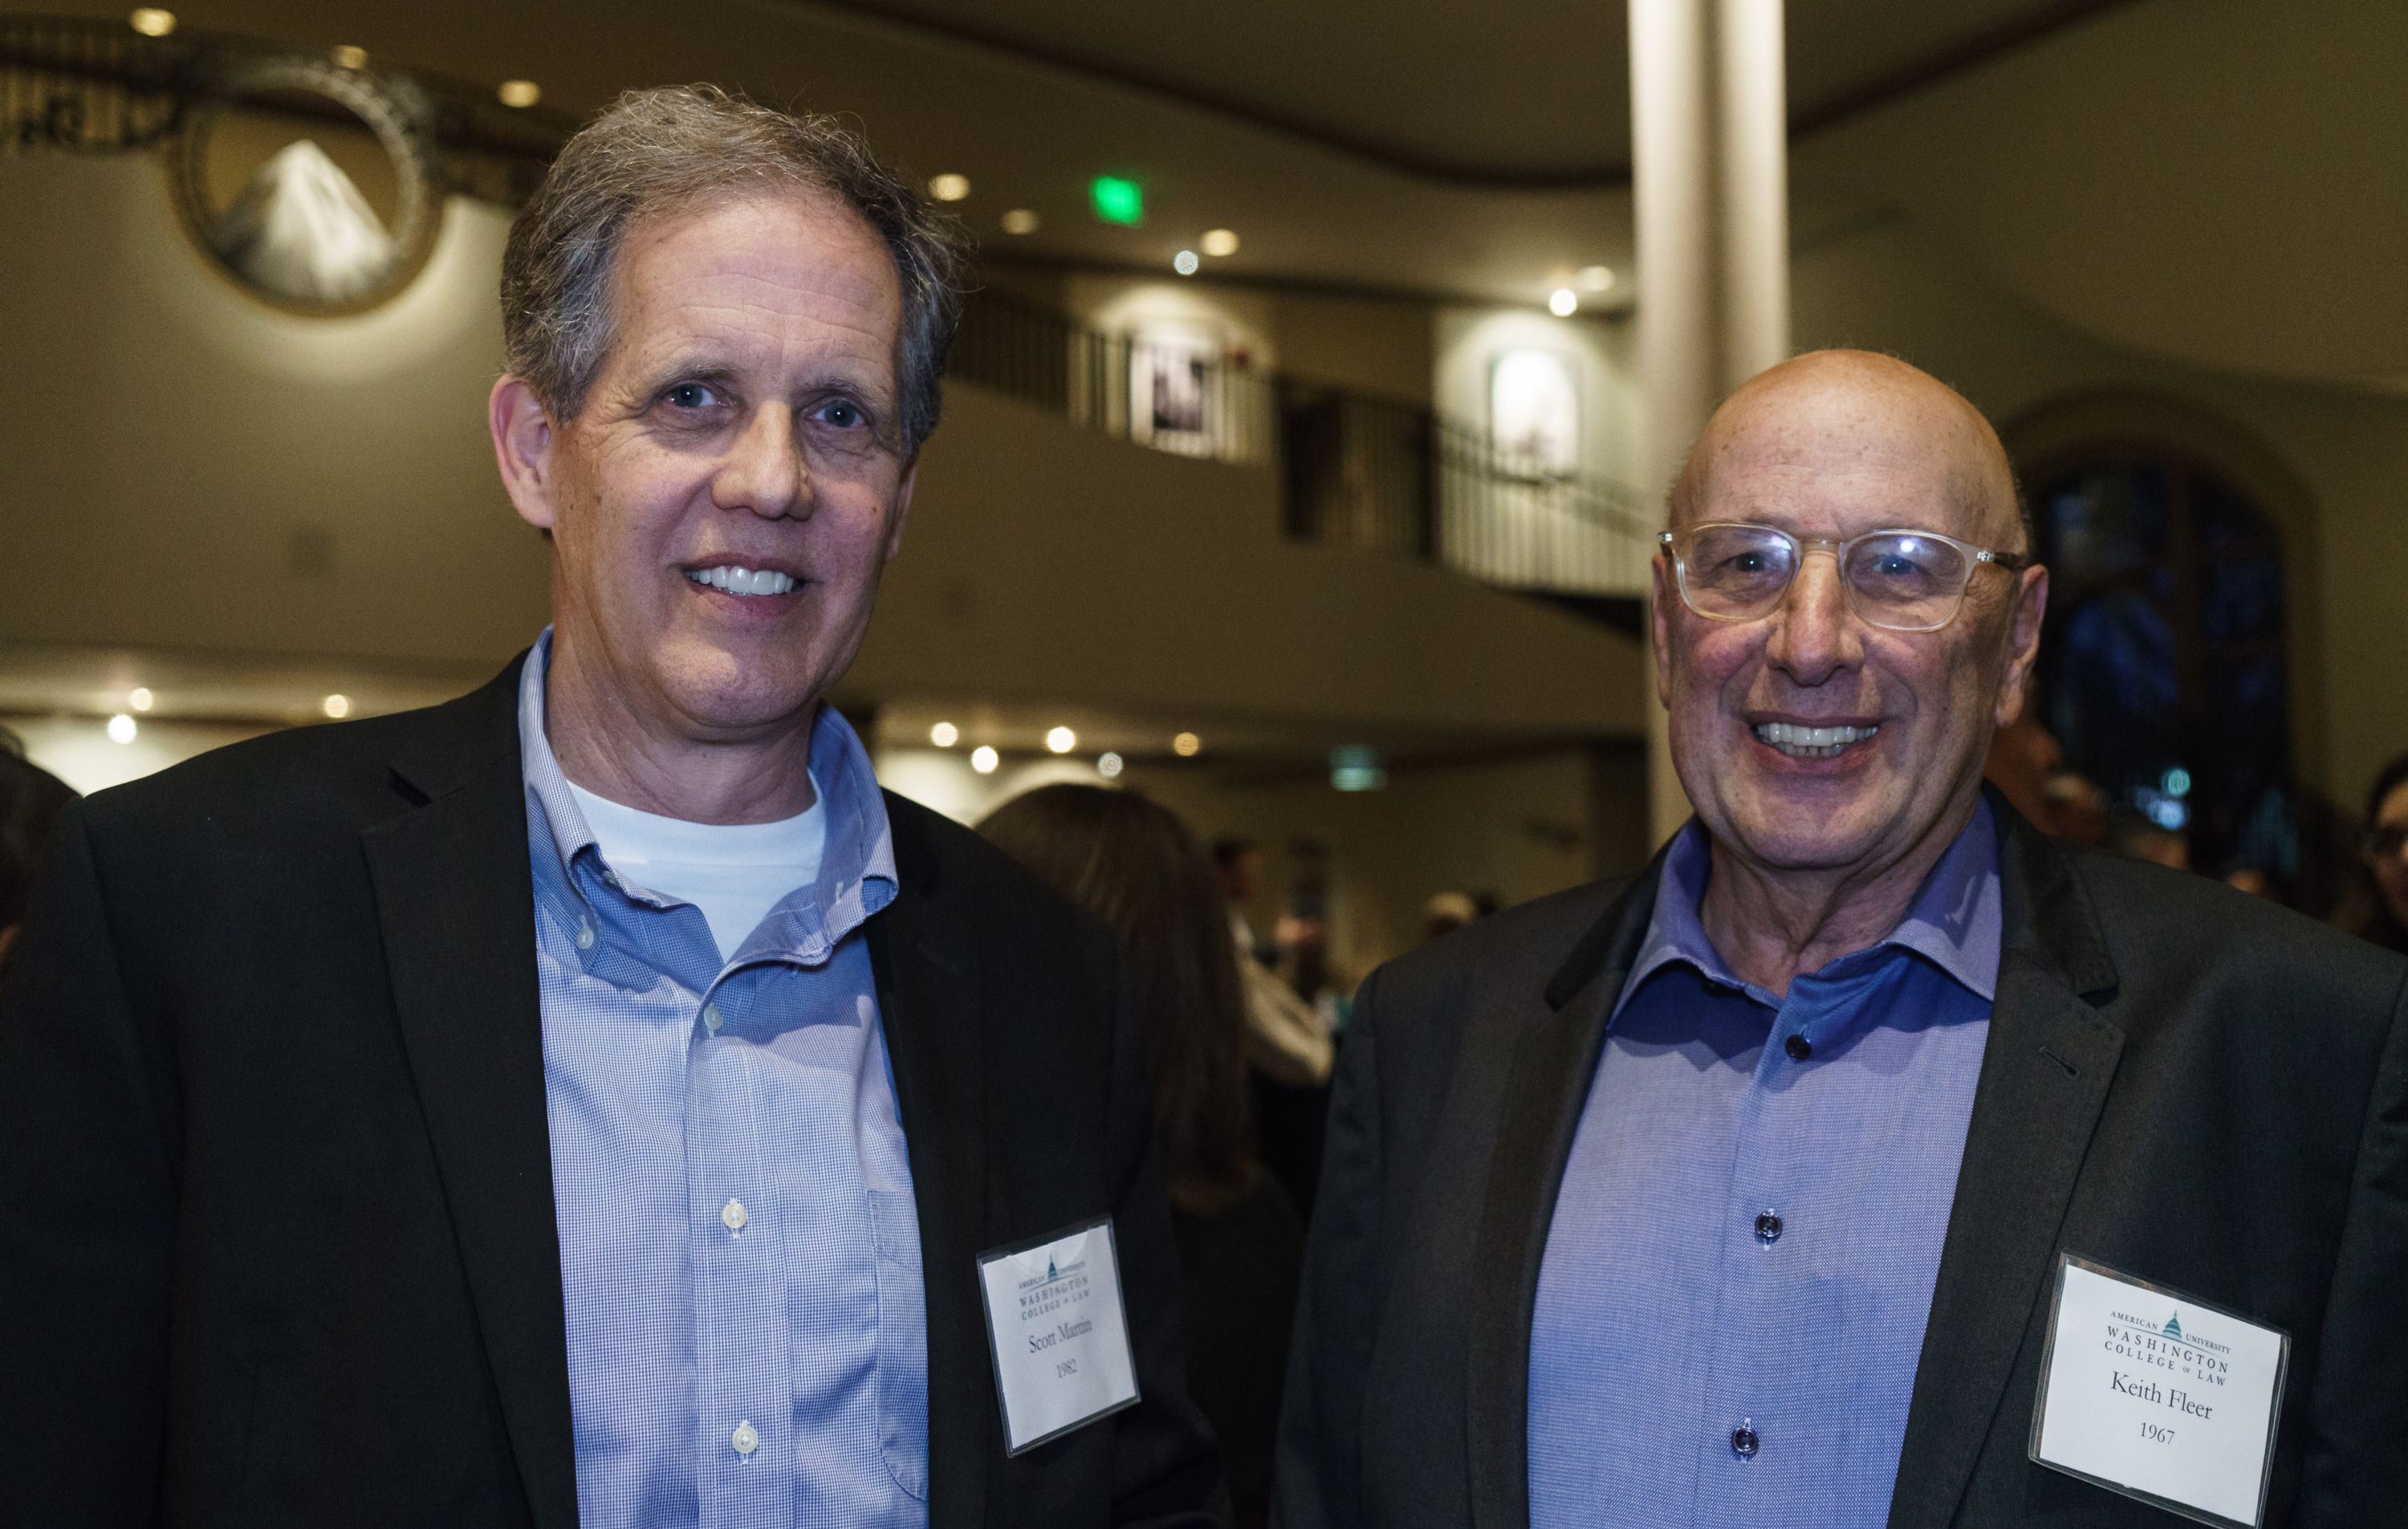 Scott Martin '82, deputy general counsel of Paramount Studios, and Keith Fleer '67